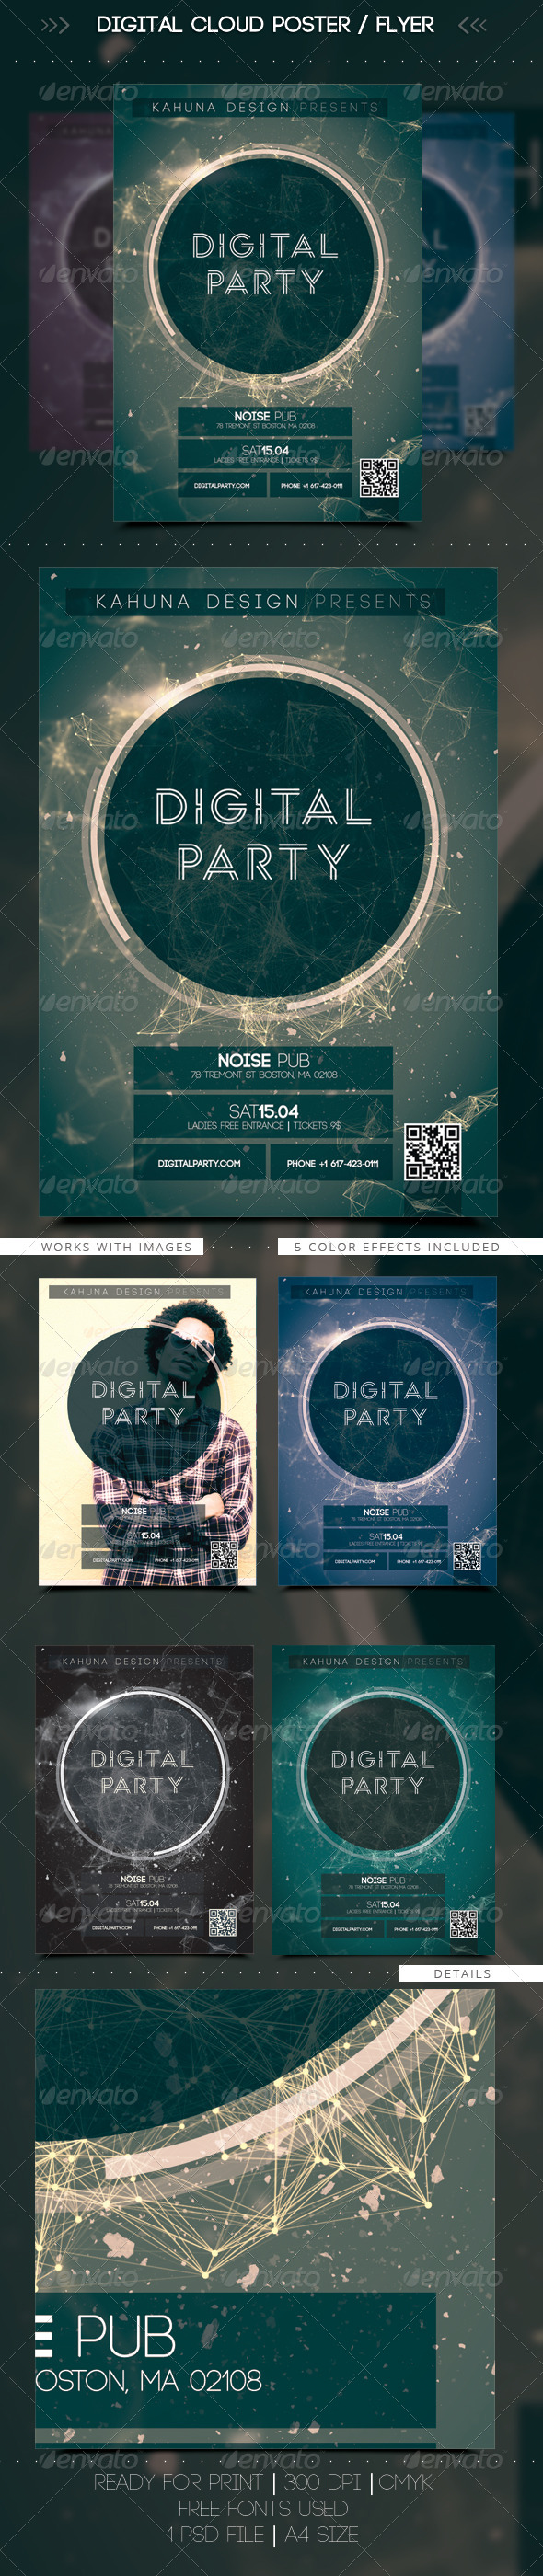 GraphicRiver Digital Cloud Poster Flyer 7108064